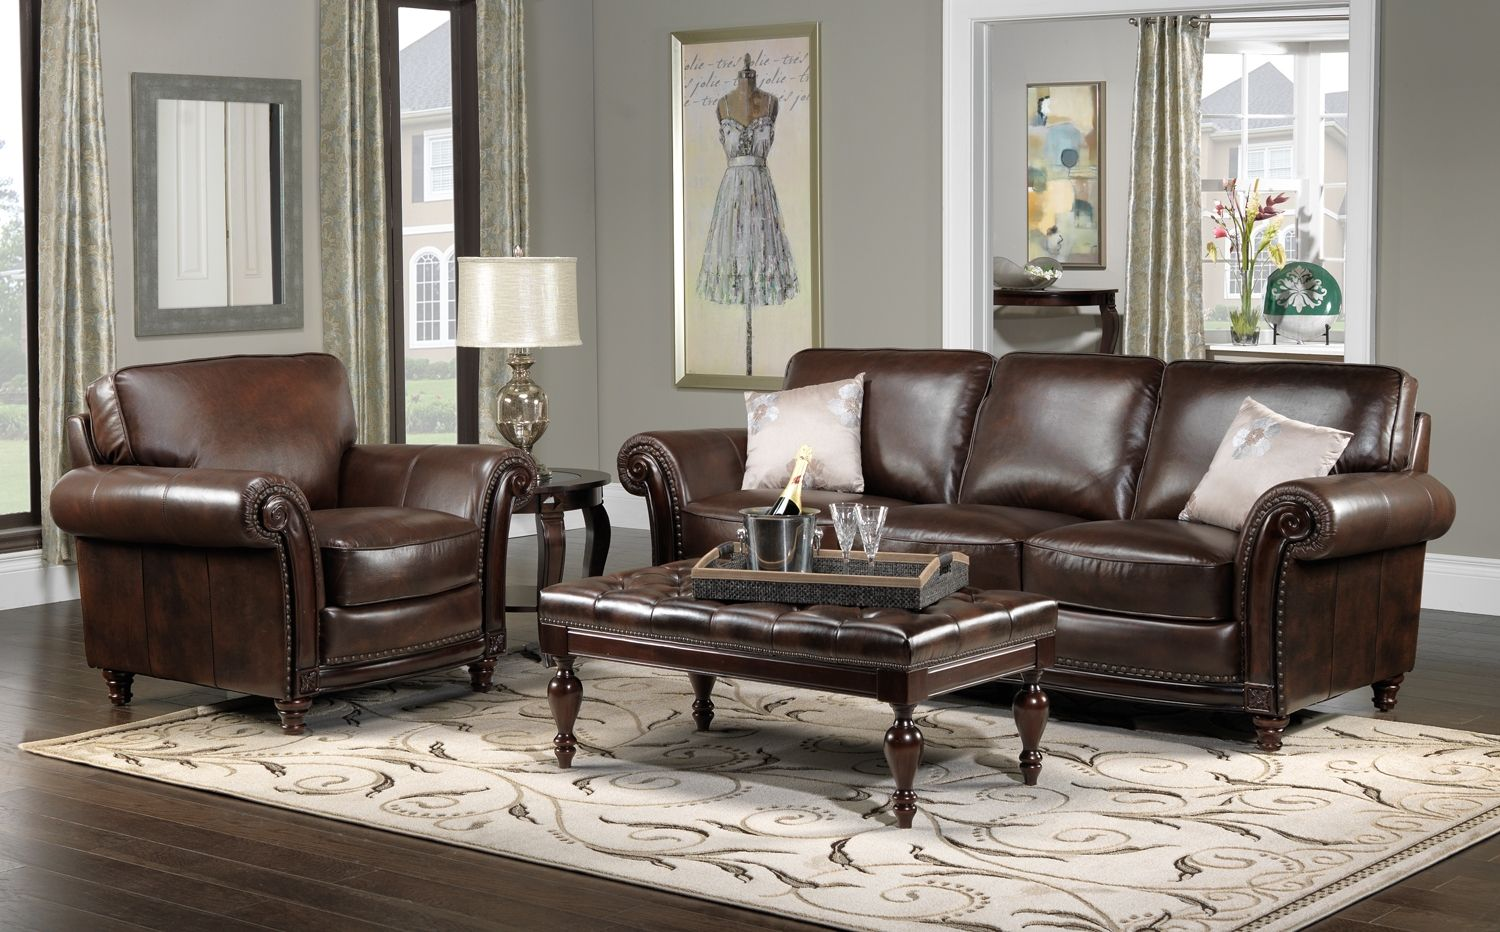 dream house Decor Ideas For Brown Leather Furniture Gngkxz